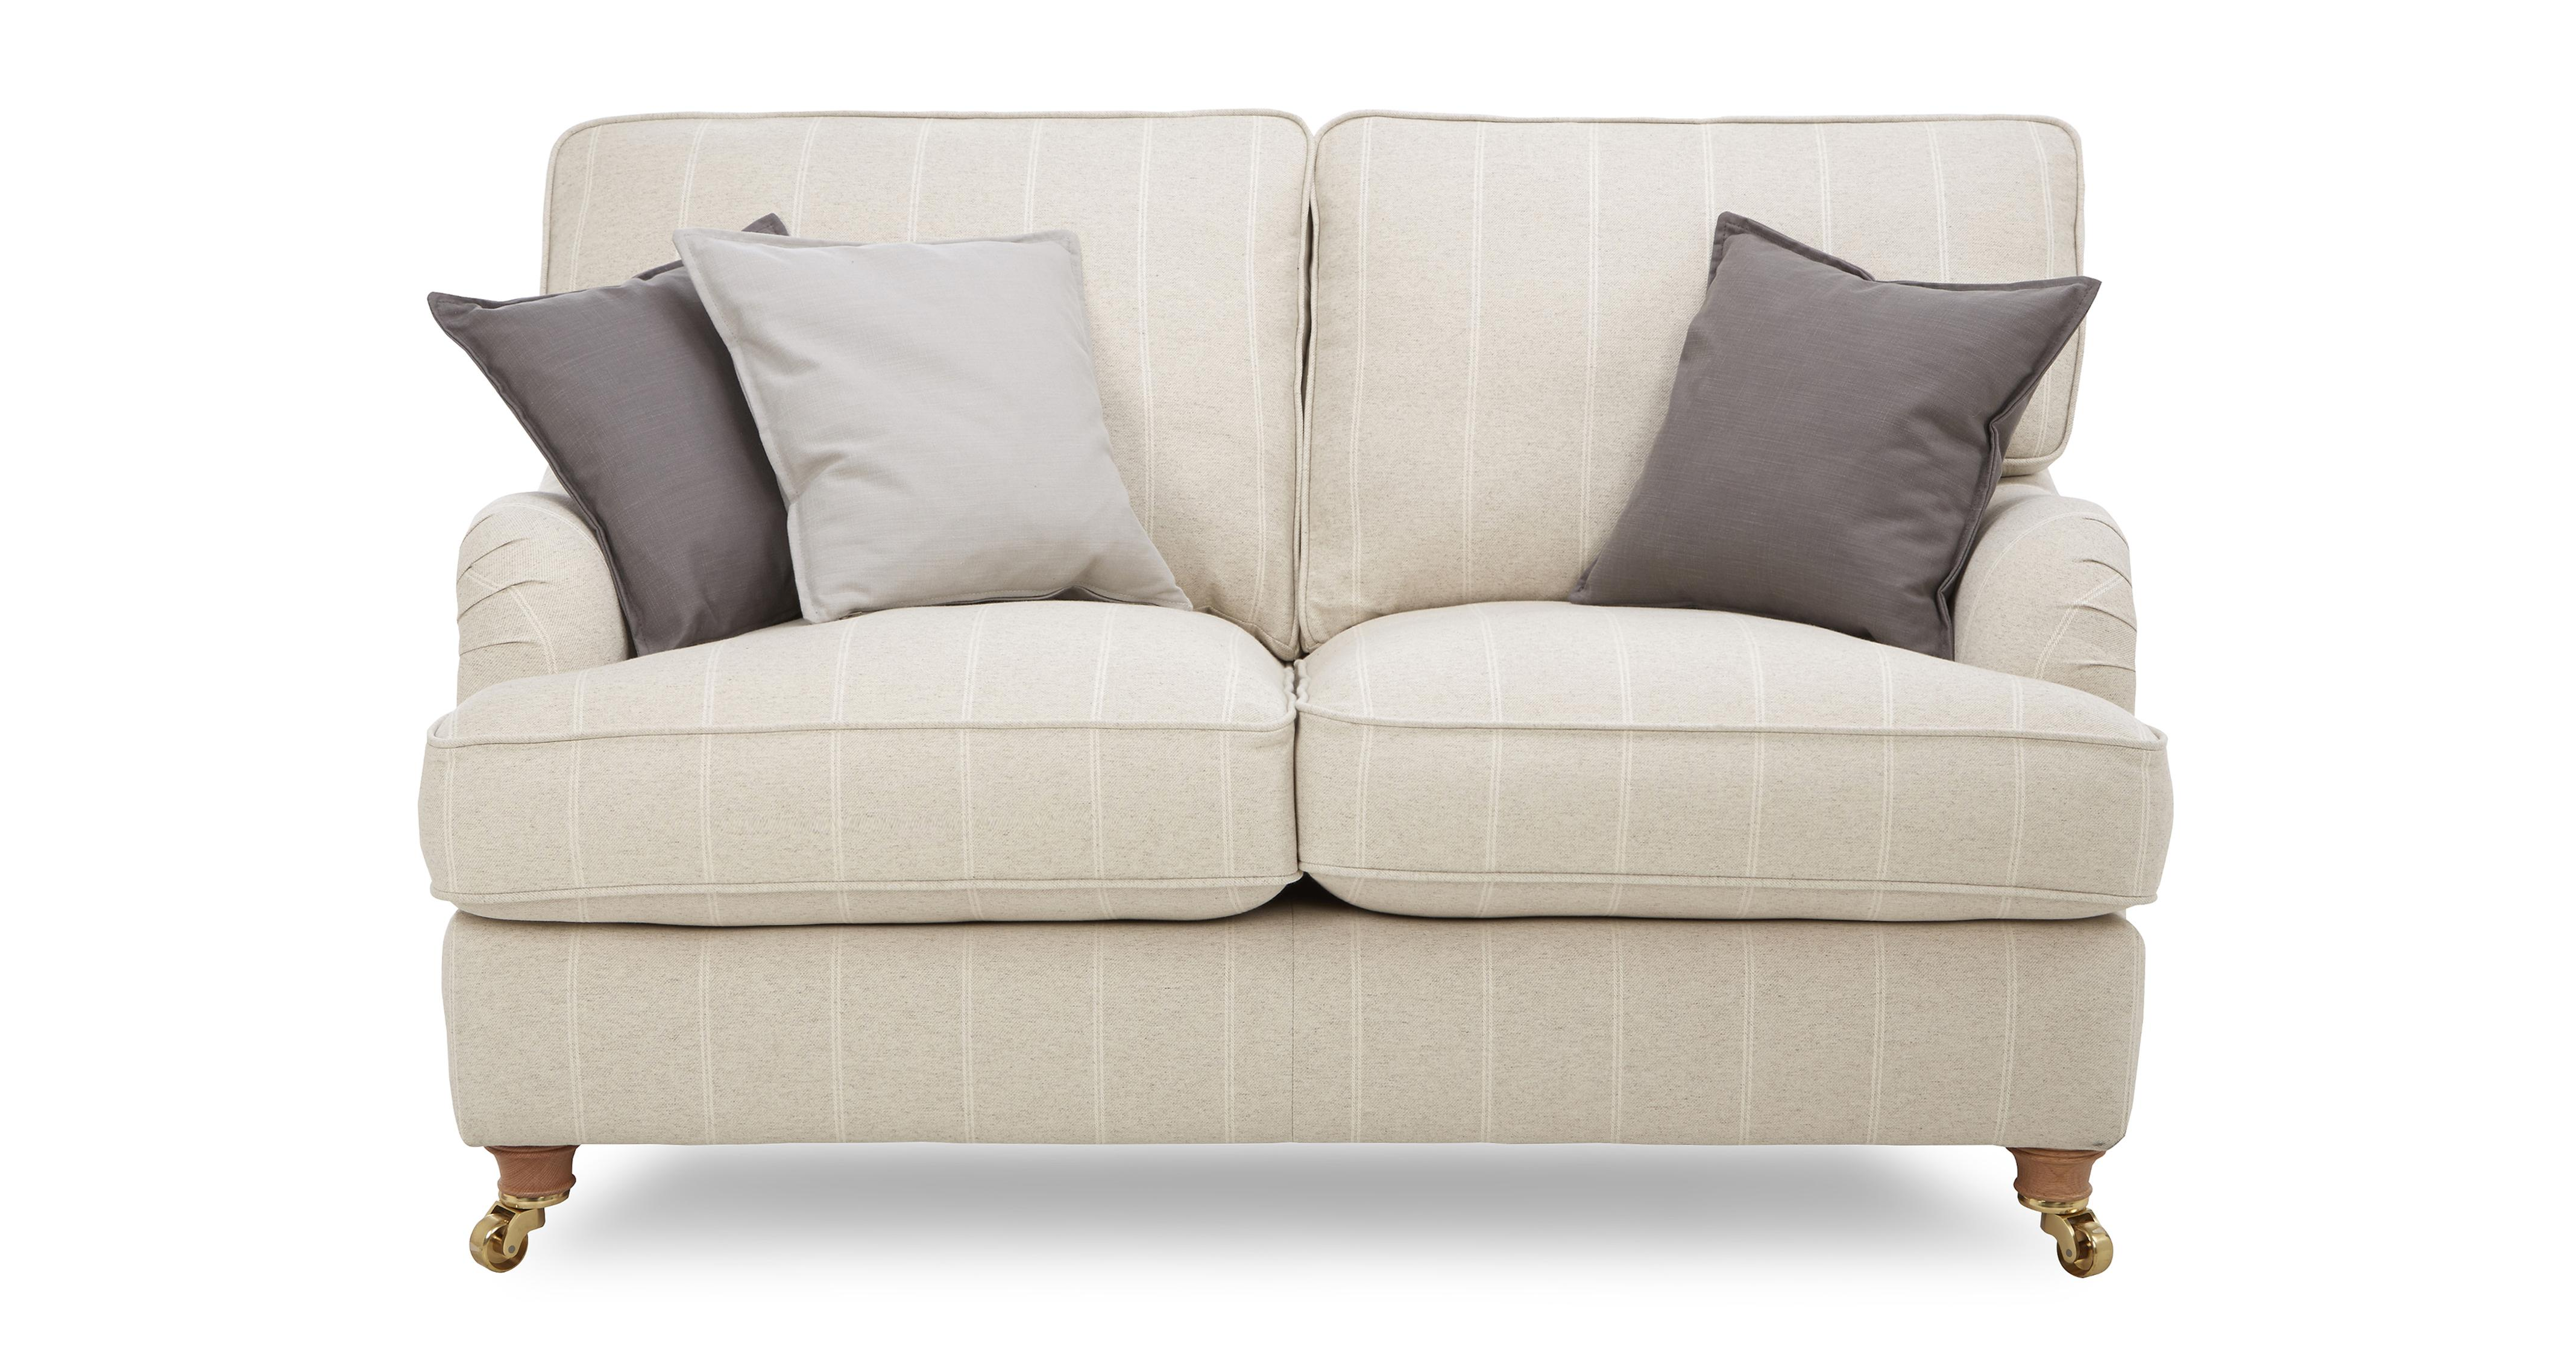 Phenomenal Gower Stripe 2 Seater Sofa Caraccident5 Cool Chair Designs And Ideas Caraccident5Info